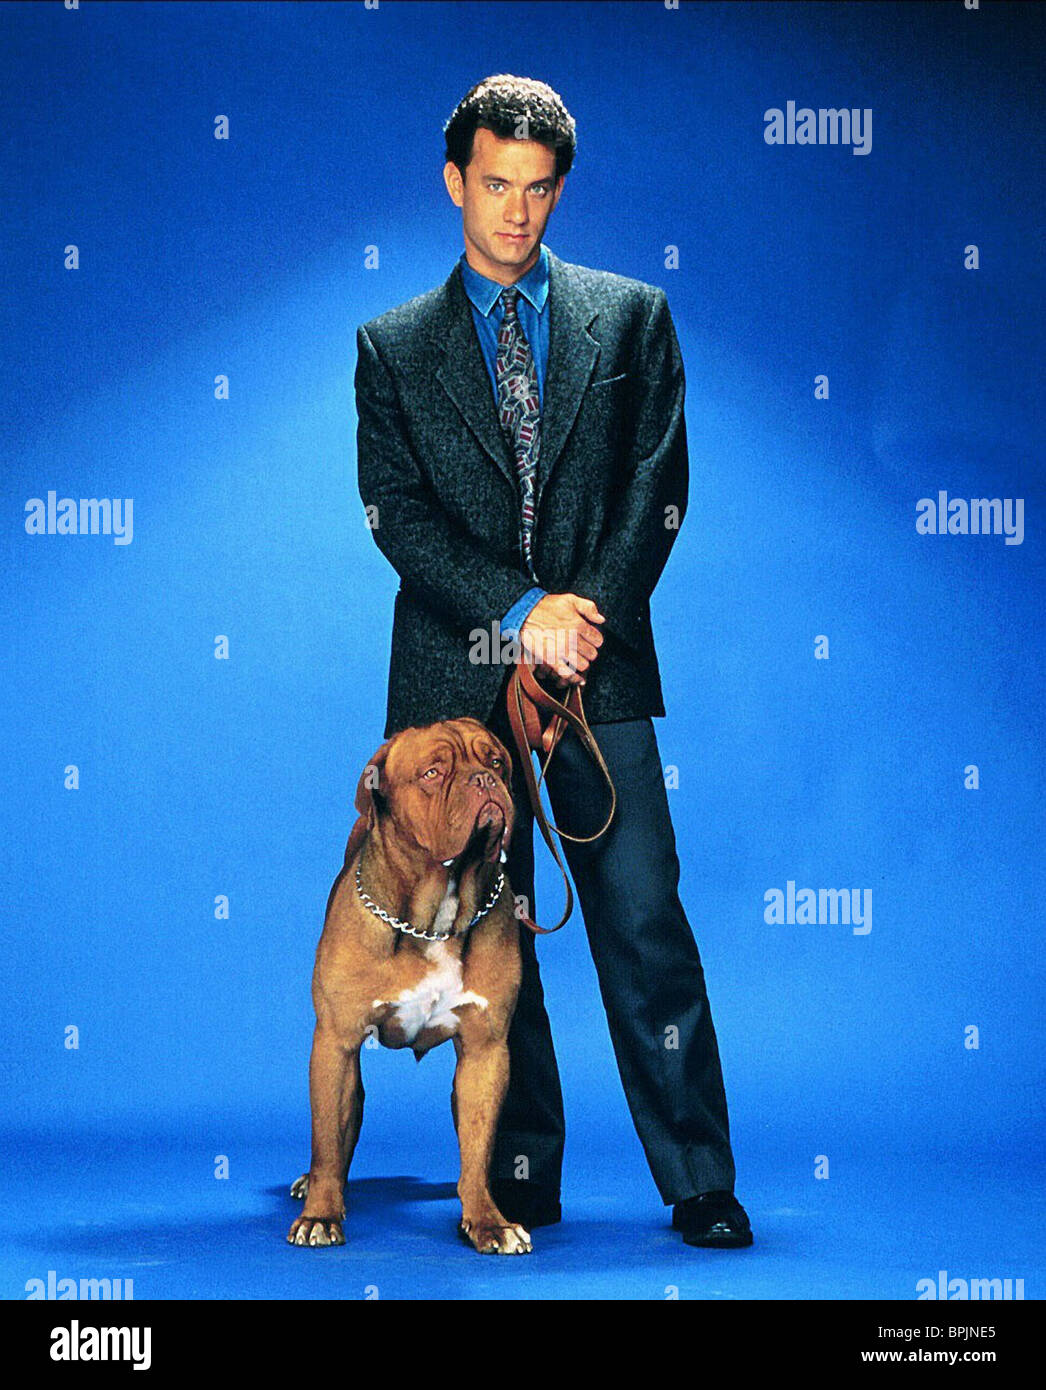 Turner And Hooch Stock Photos & Turner And Hooch Stock ...